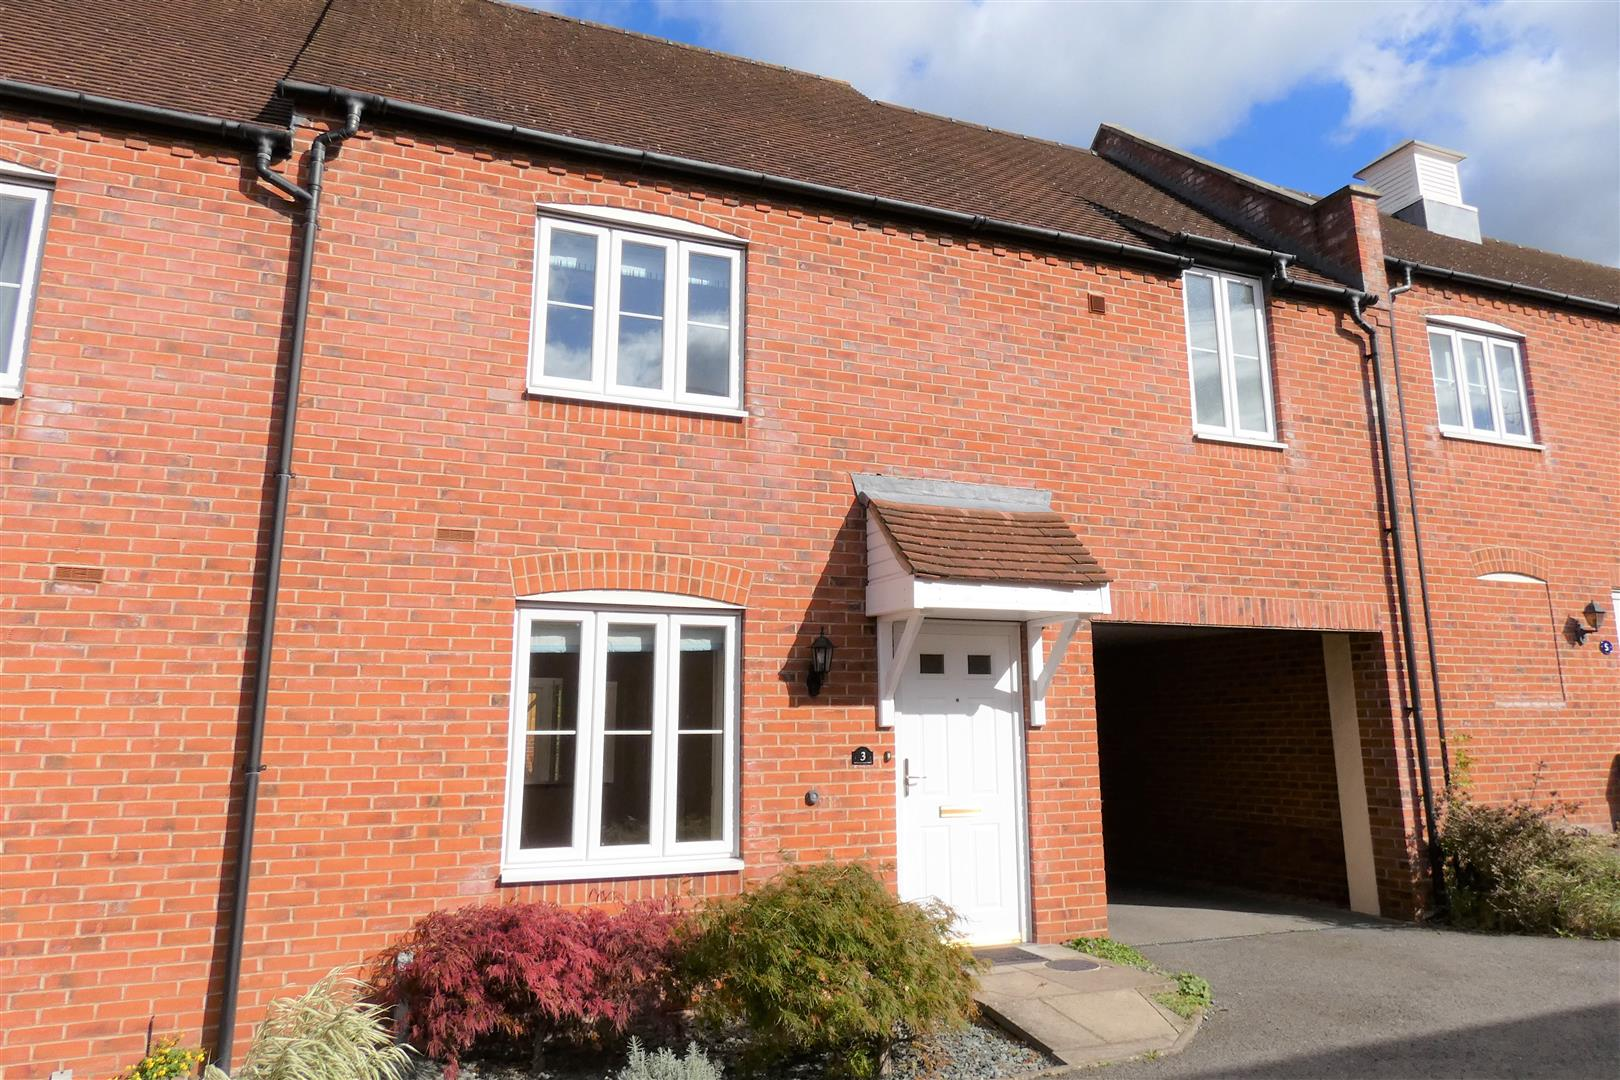 3 Bedrooms Terraced House for sale in Griffith Close, Stratford-Upon-Avon